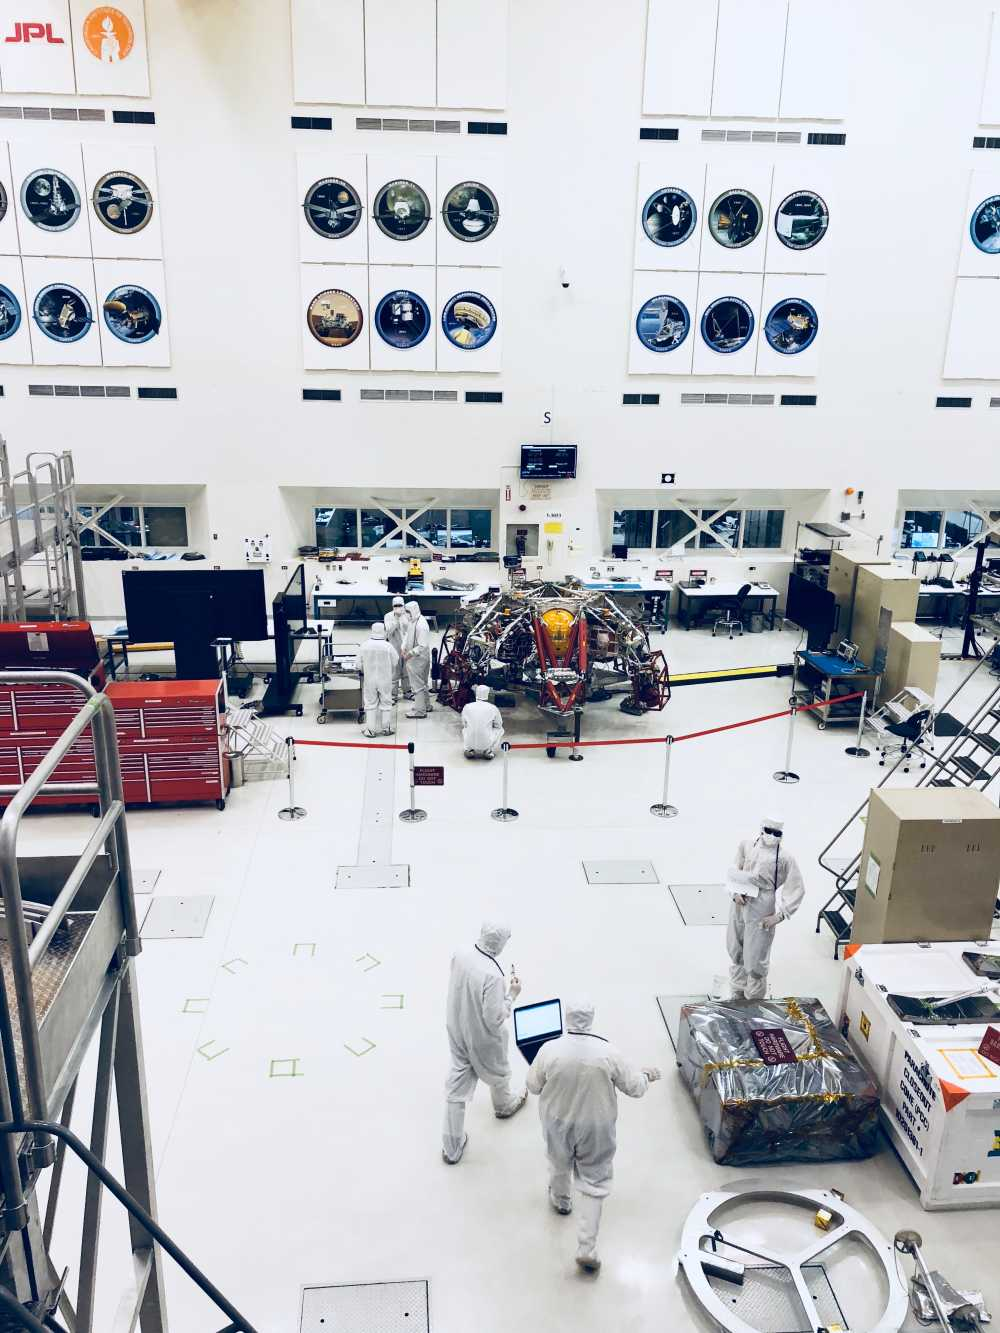 NASA engineers in white clean room suits working on a Mars rover.